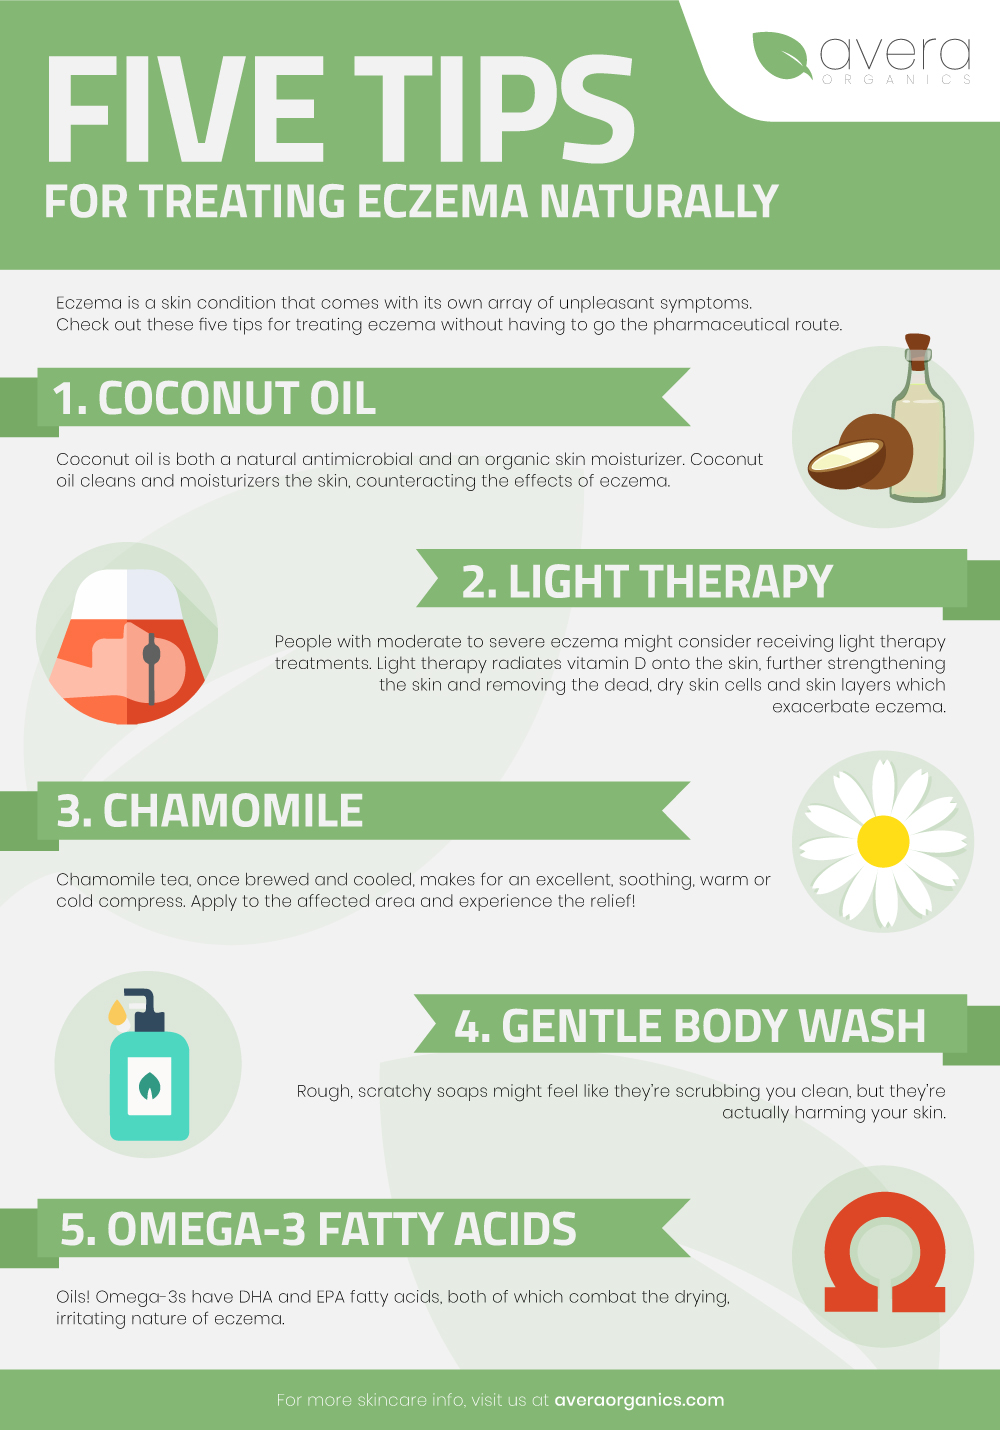 5 tips for treating eczema naturally without medication